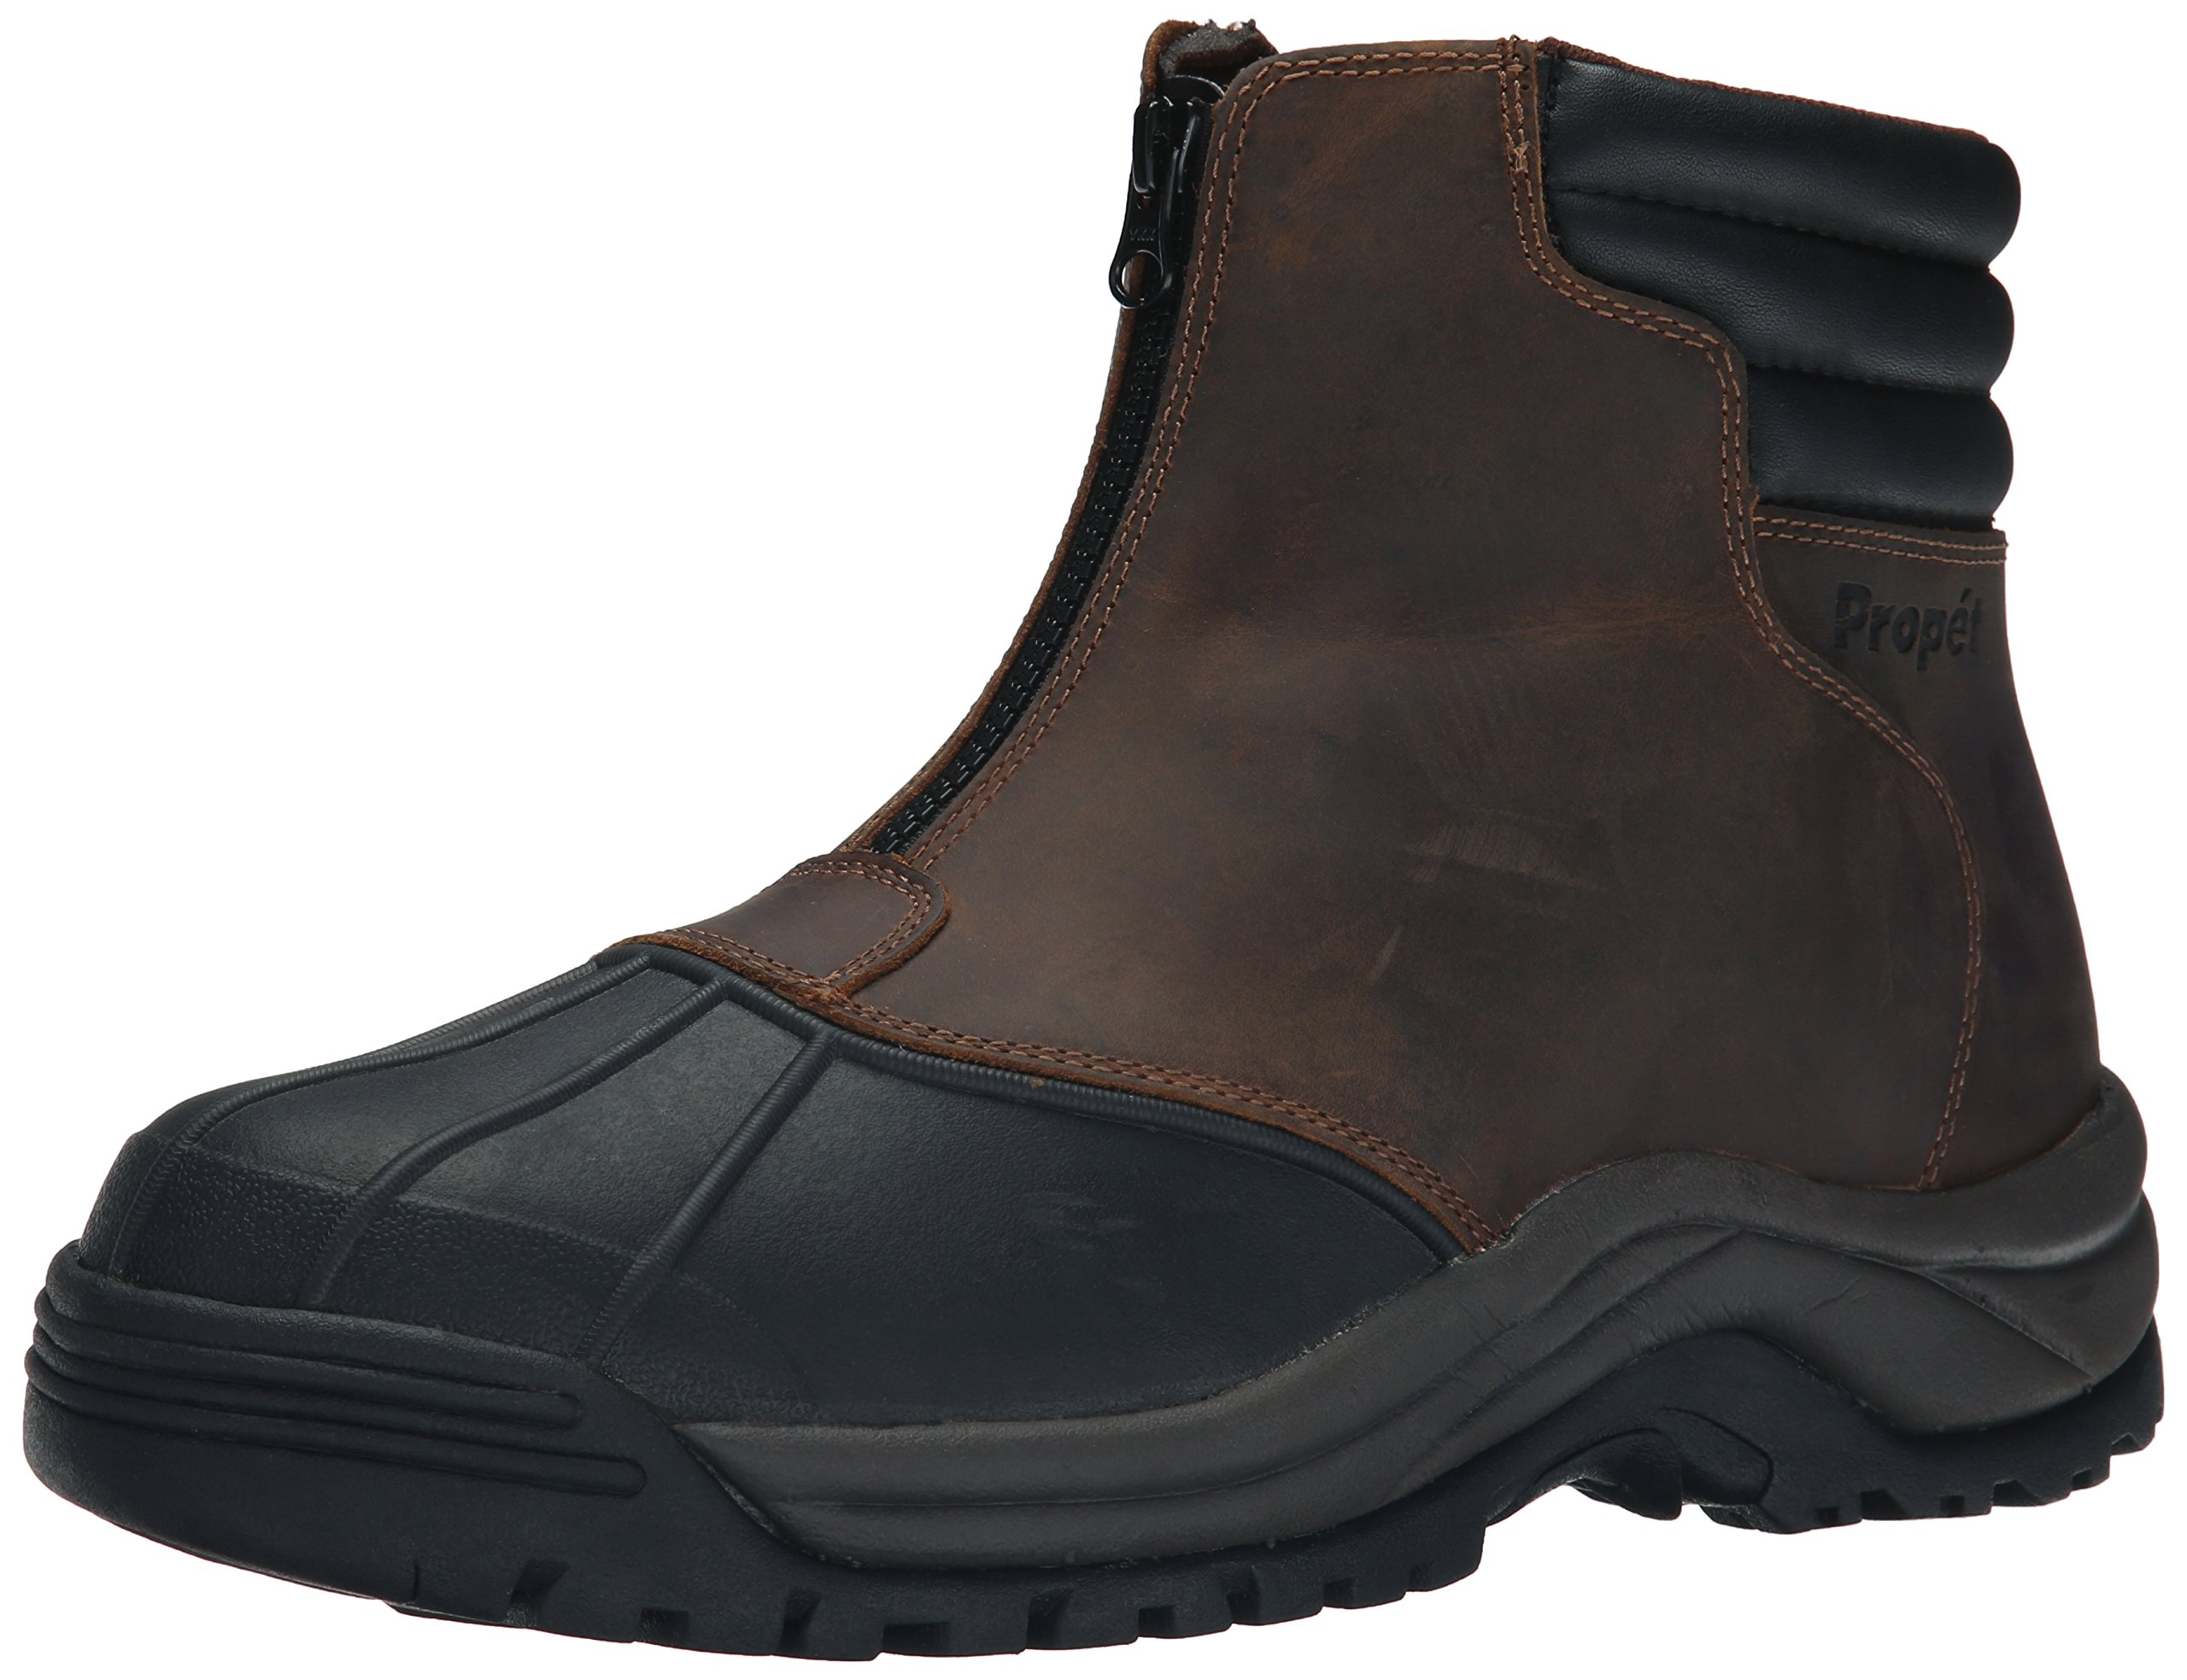 Propet Men's Blizzard Mid Zip Boots, Brown/Black, 11 5E US